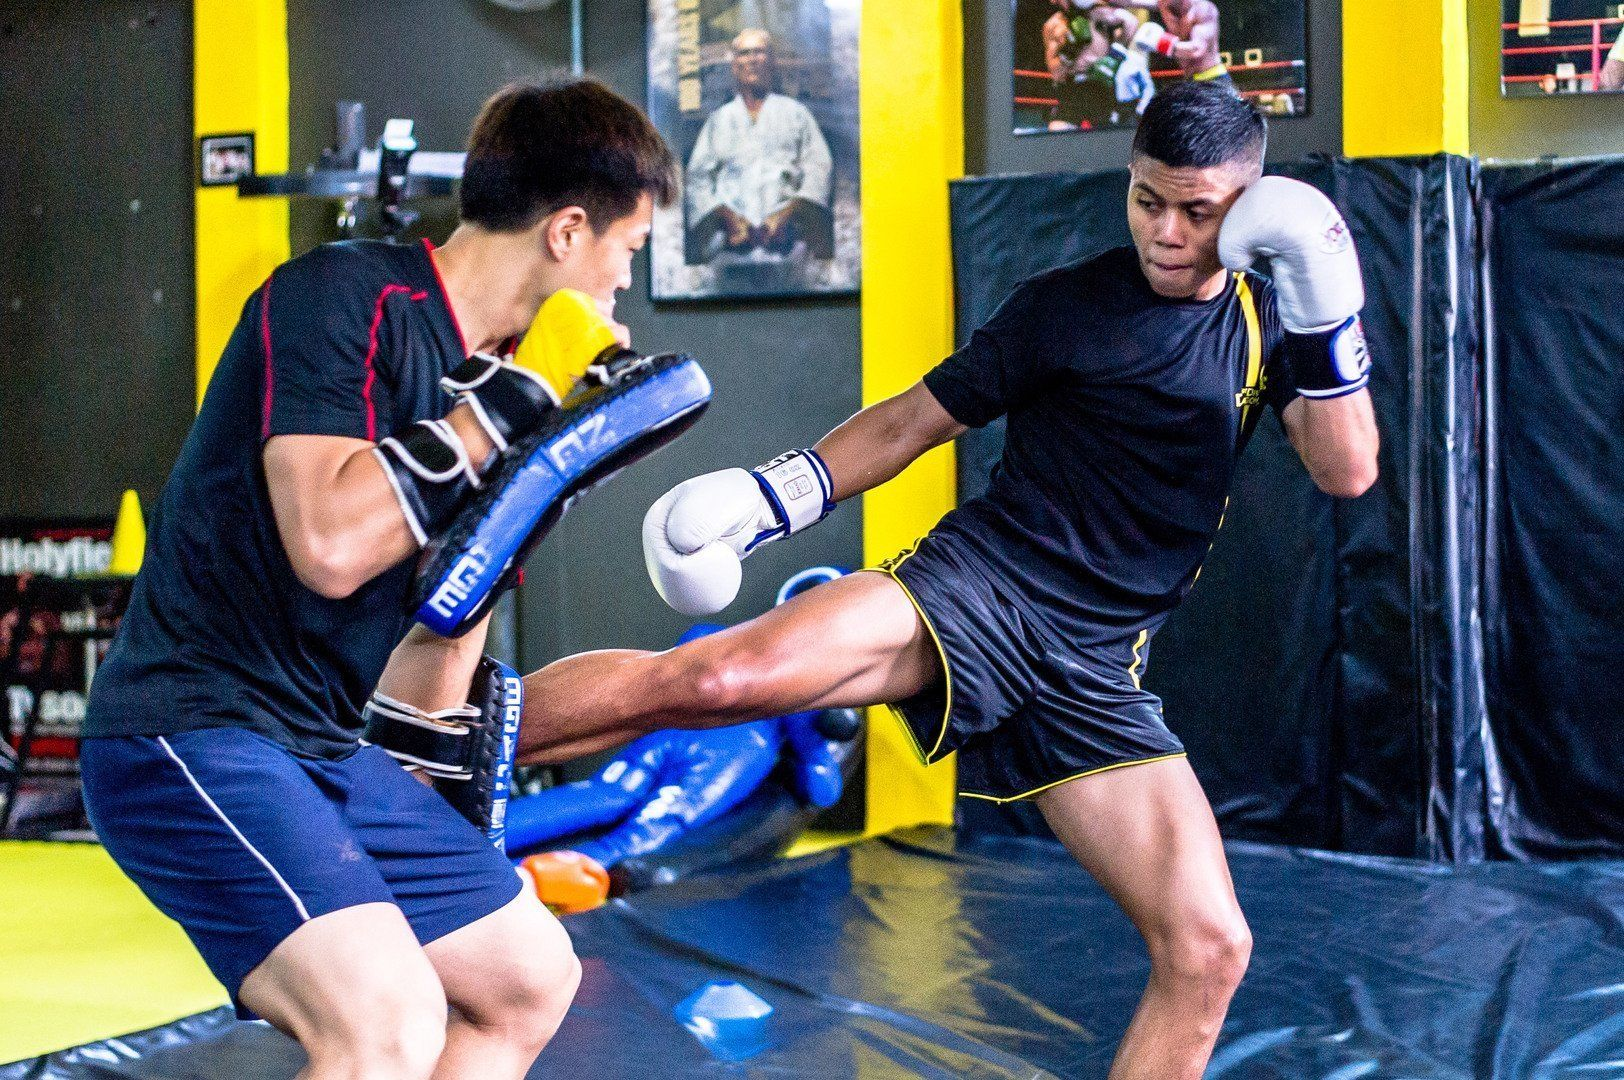 Muay Thai practice at Juggernaut Fight Club in Singapore